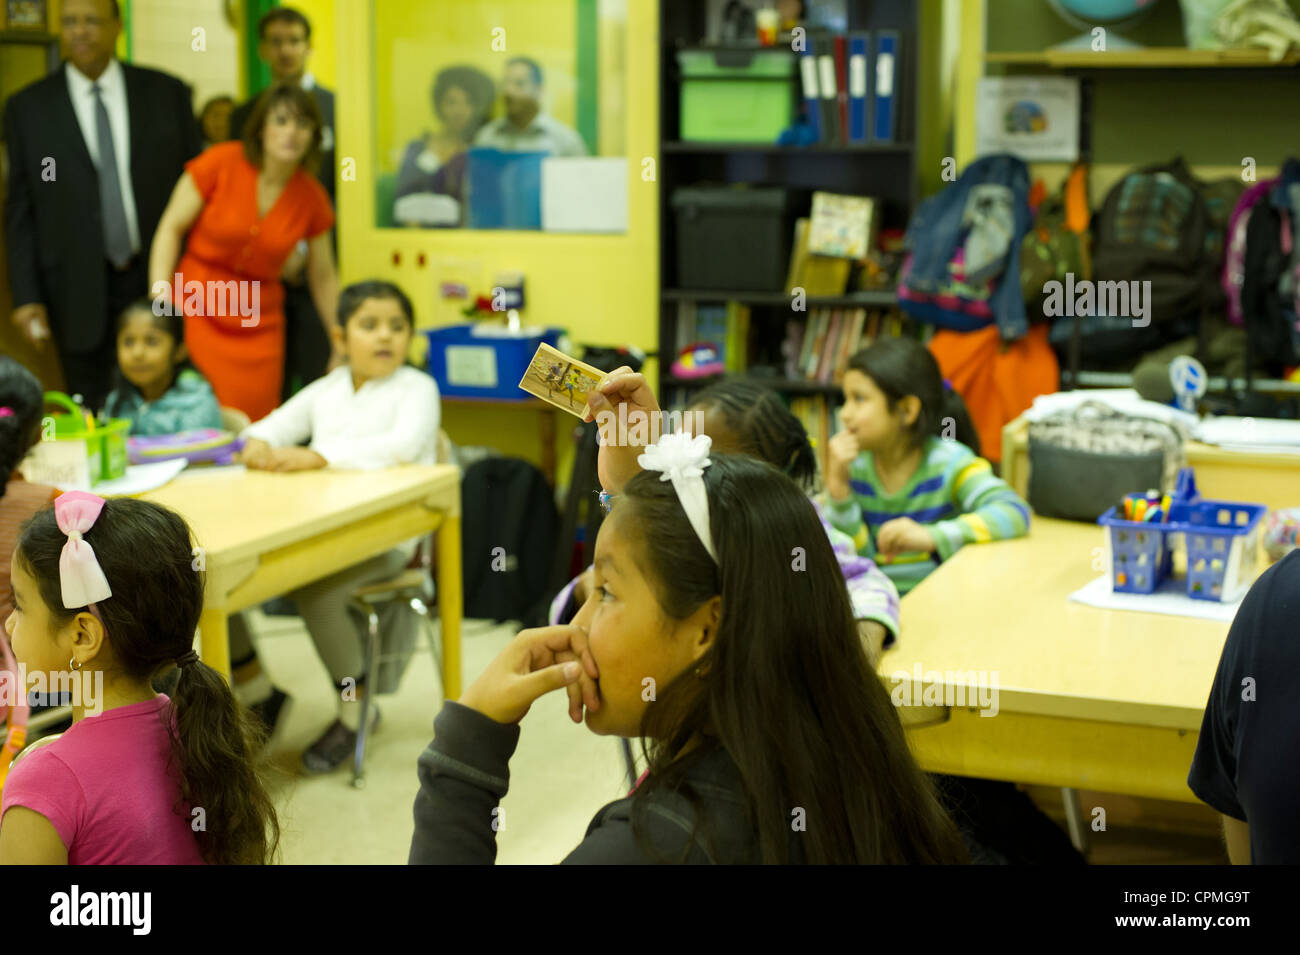 First and second grade Arabic class in New York - Stock Image